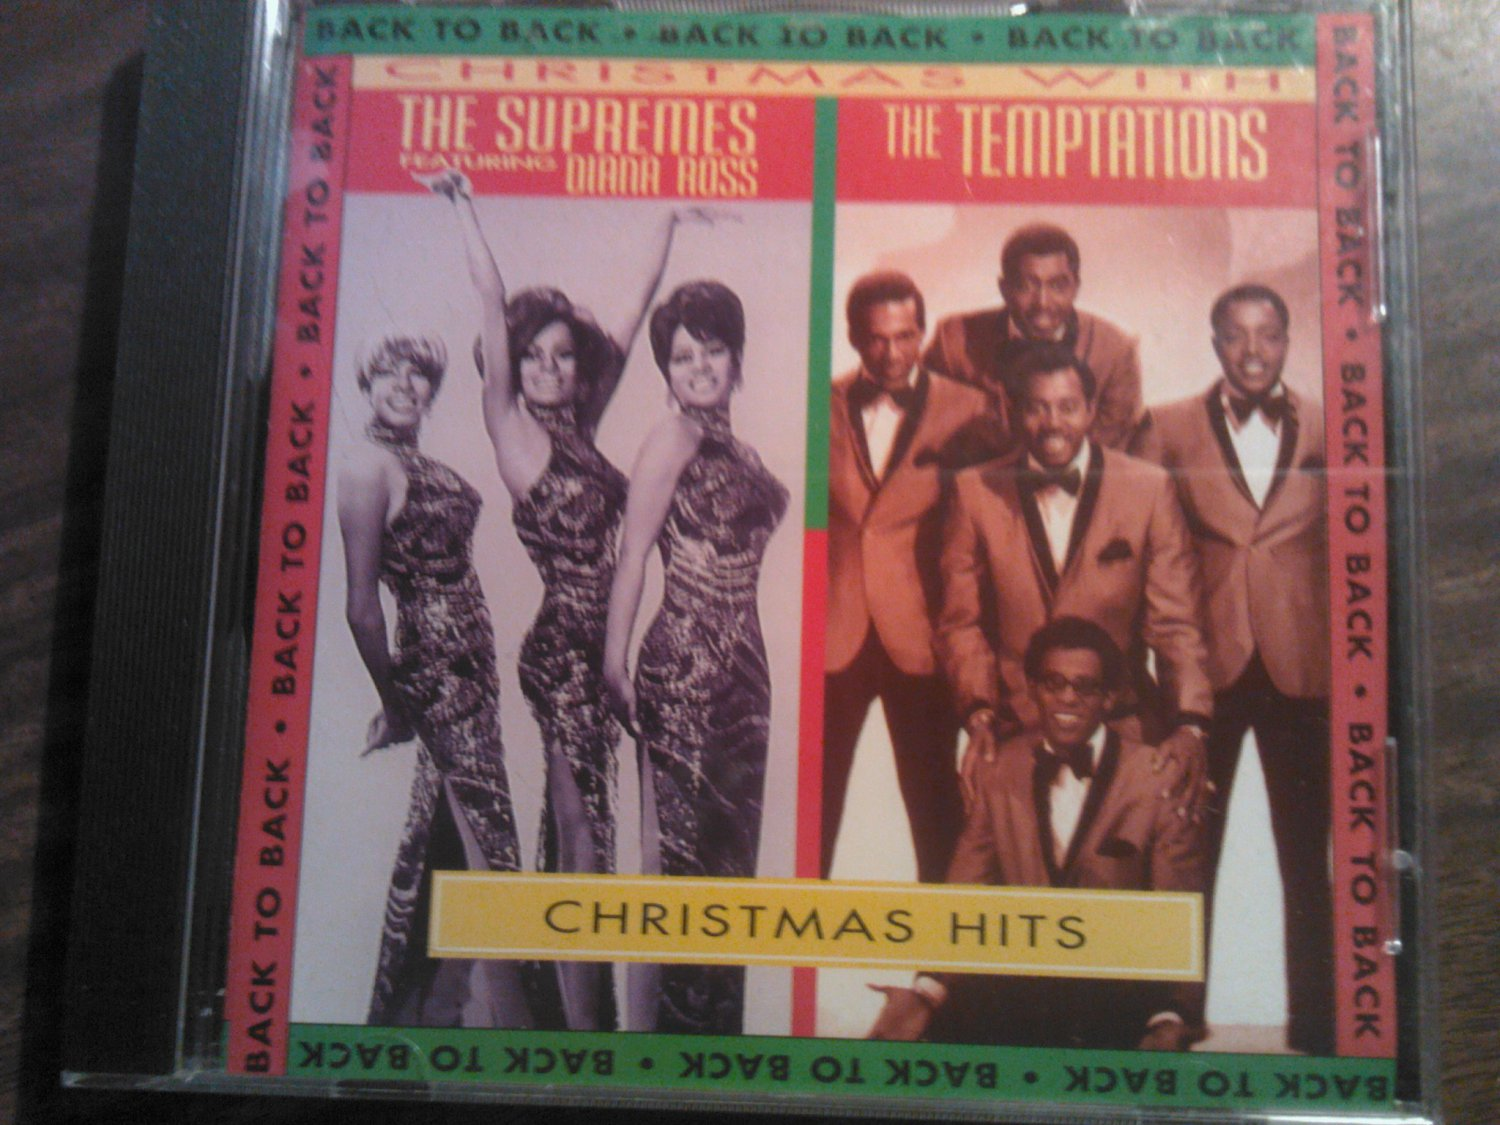 CD THE SUPREMES/THE TEMPTATIONS Christmas Hits diana ross holiday SALE